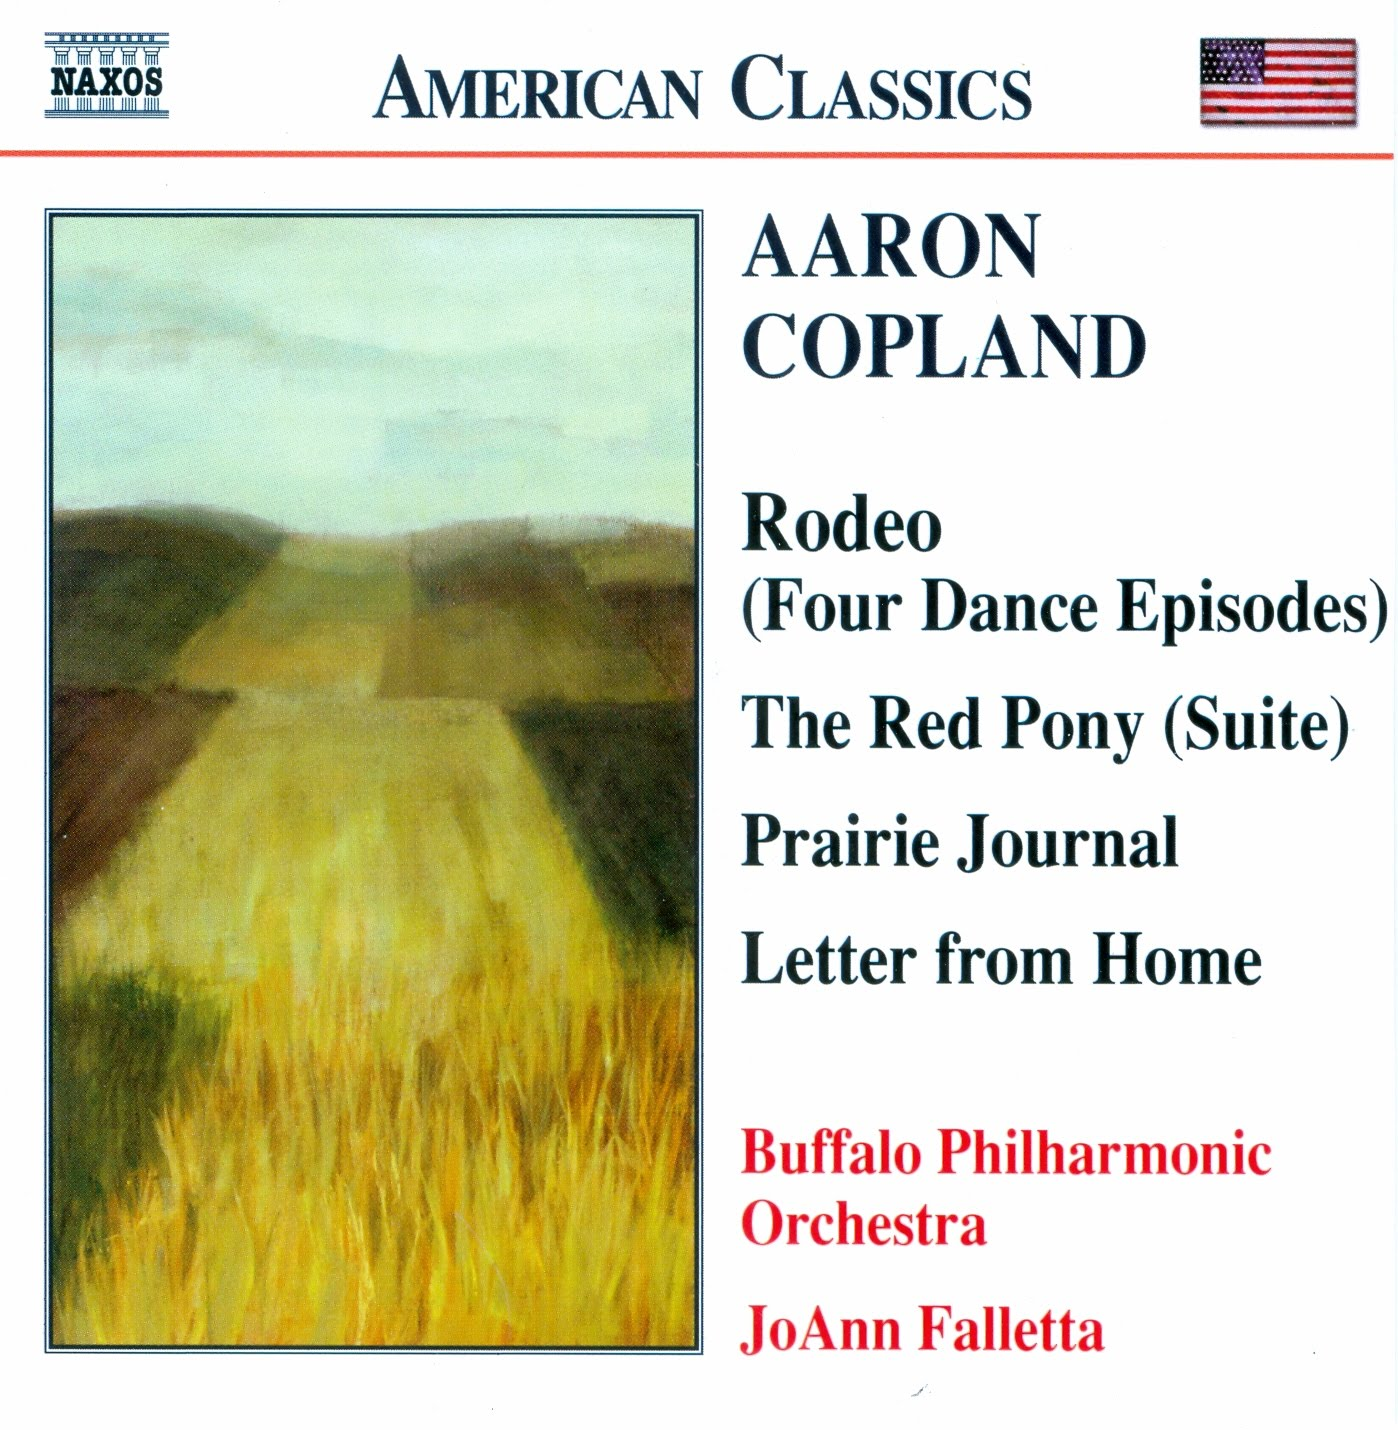 aaron copland rodeo four dance episodes